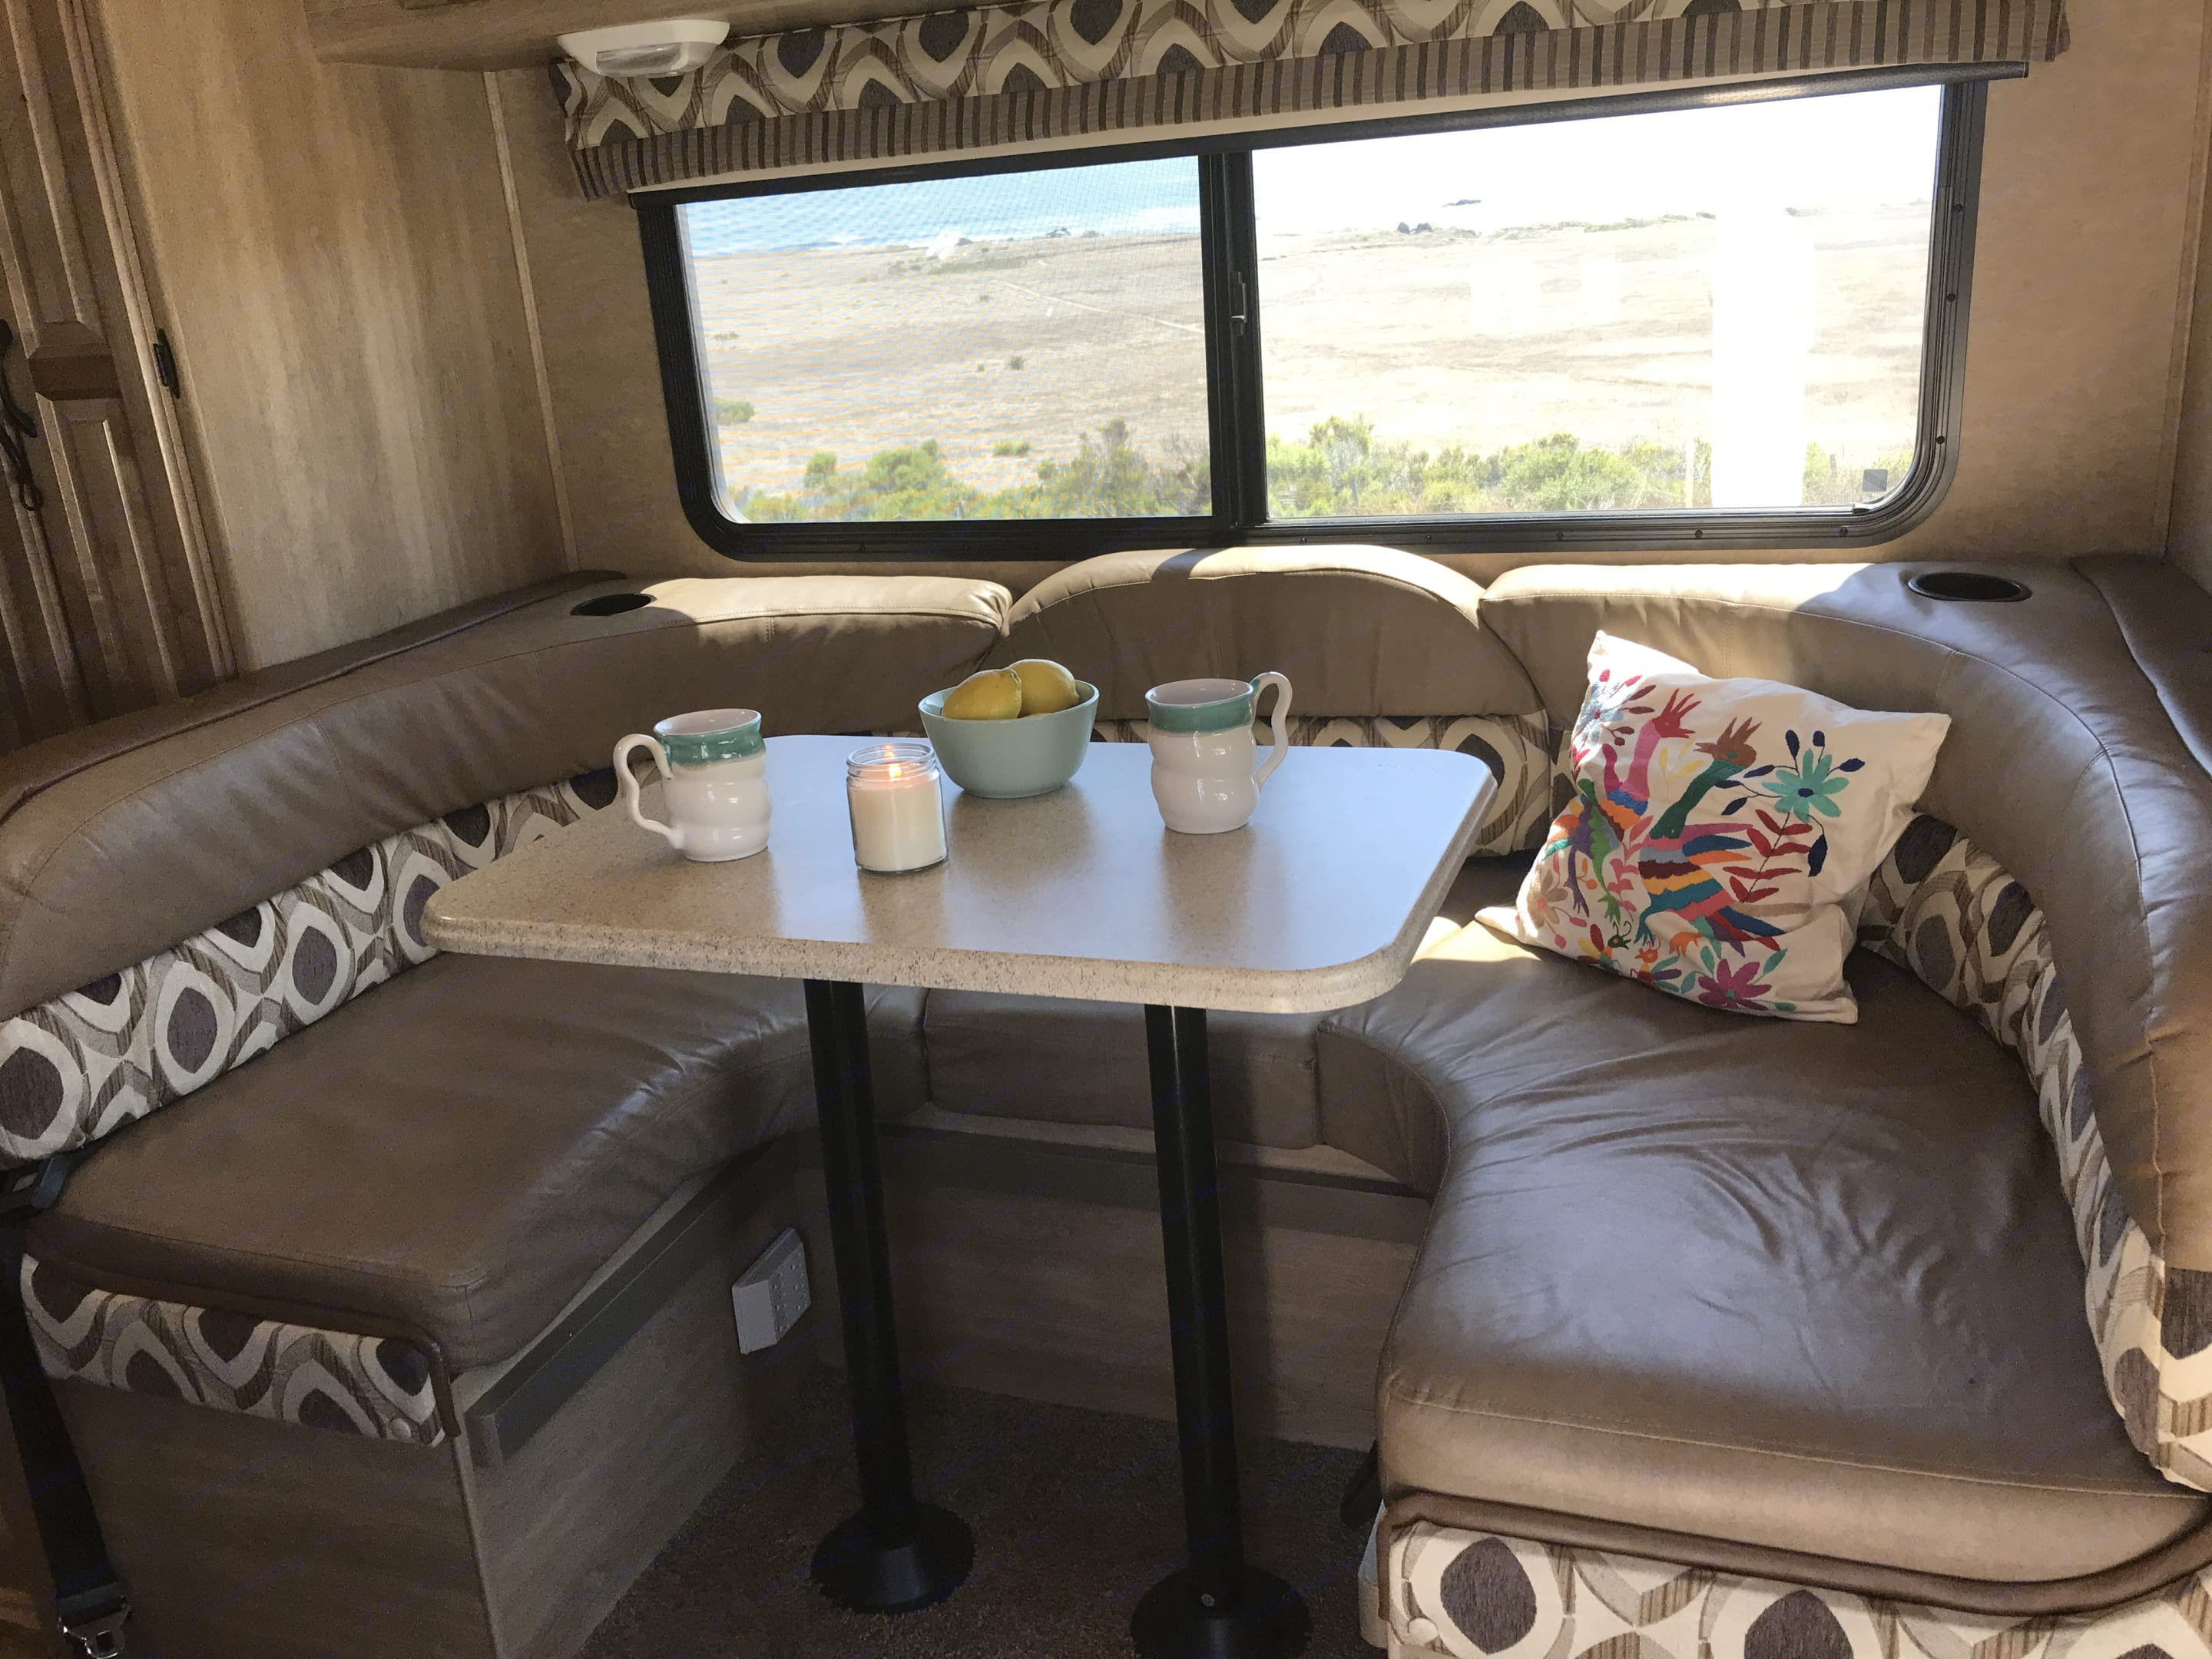 Horseshoe dining table with screened window. Coachmen Prism 2015